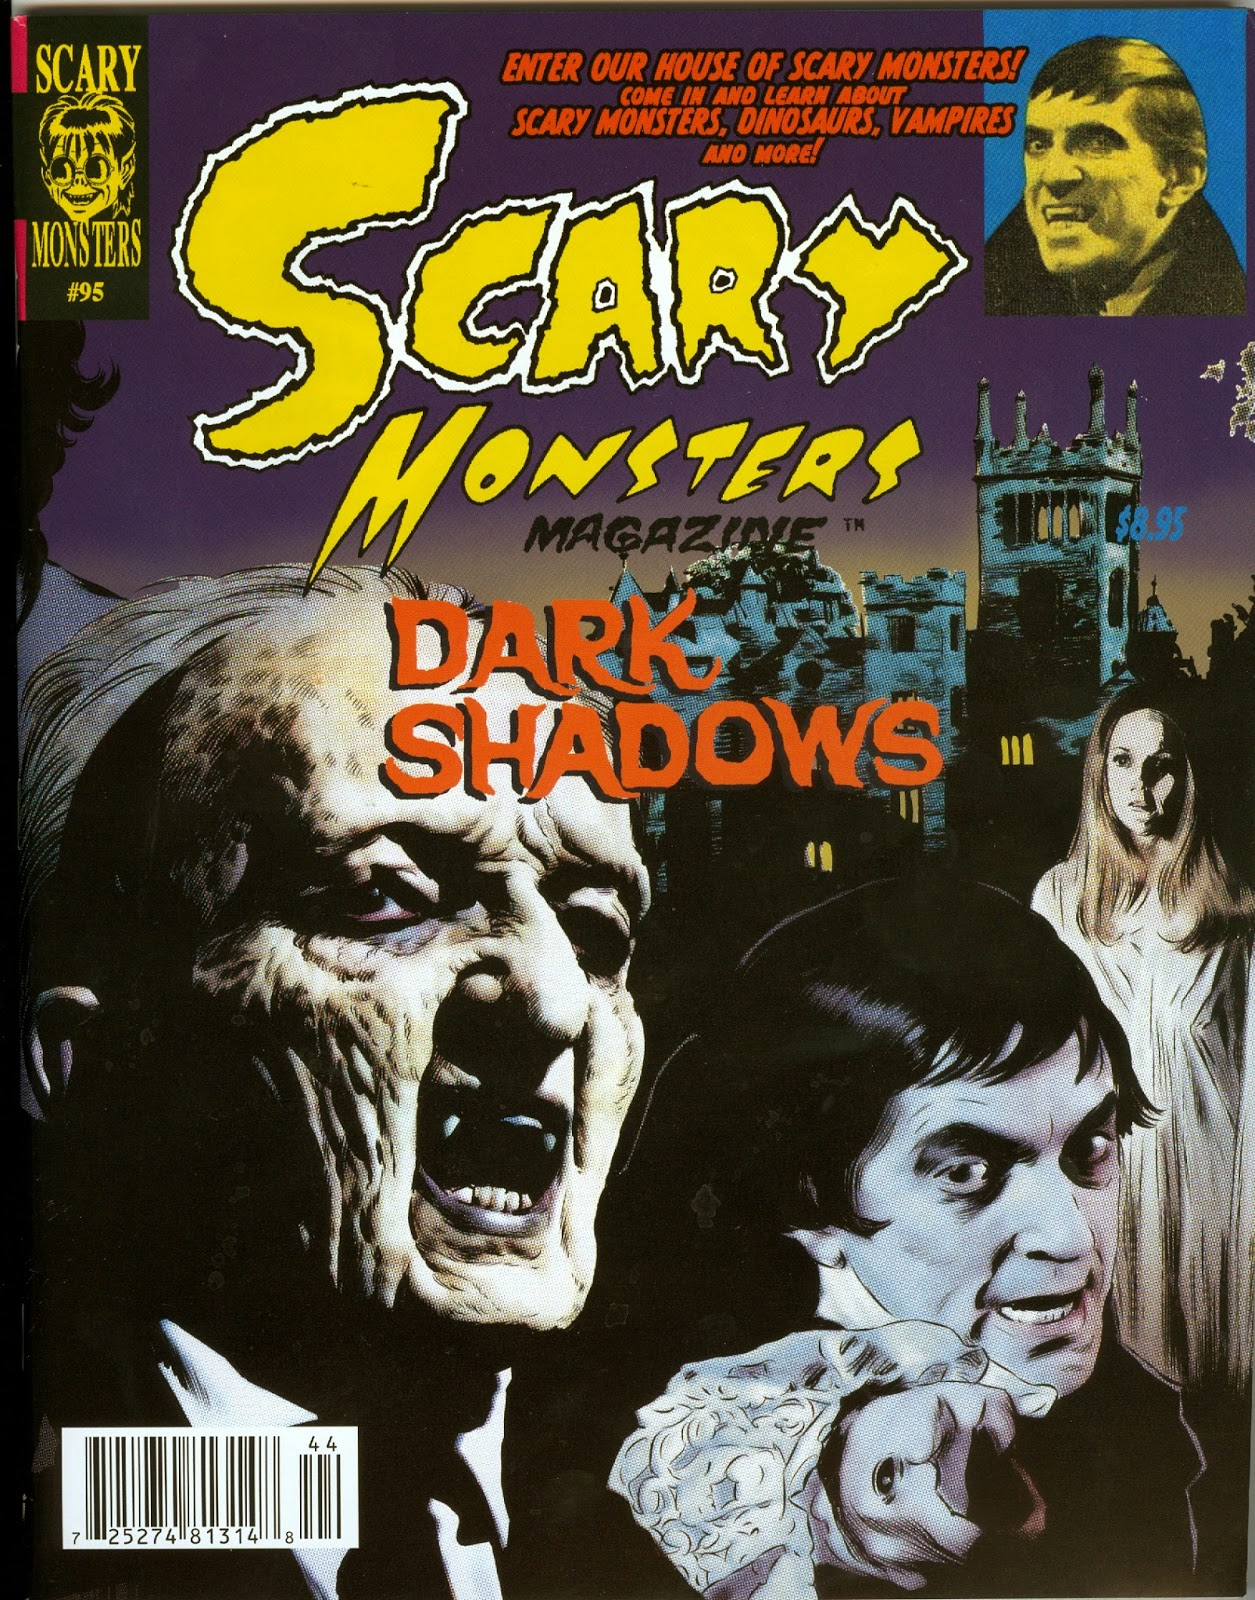 http://drgangrene.blogspot.com/2015/05/scary-monsters-95-interview-with-mark.html